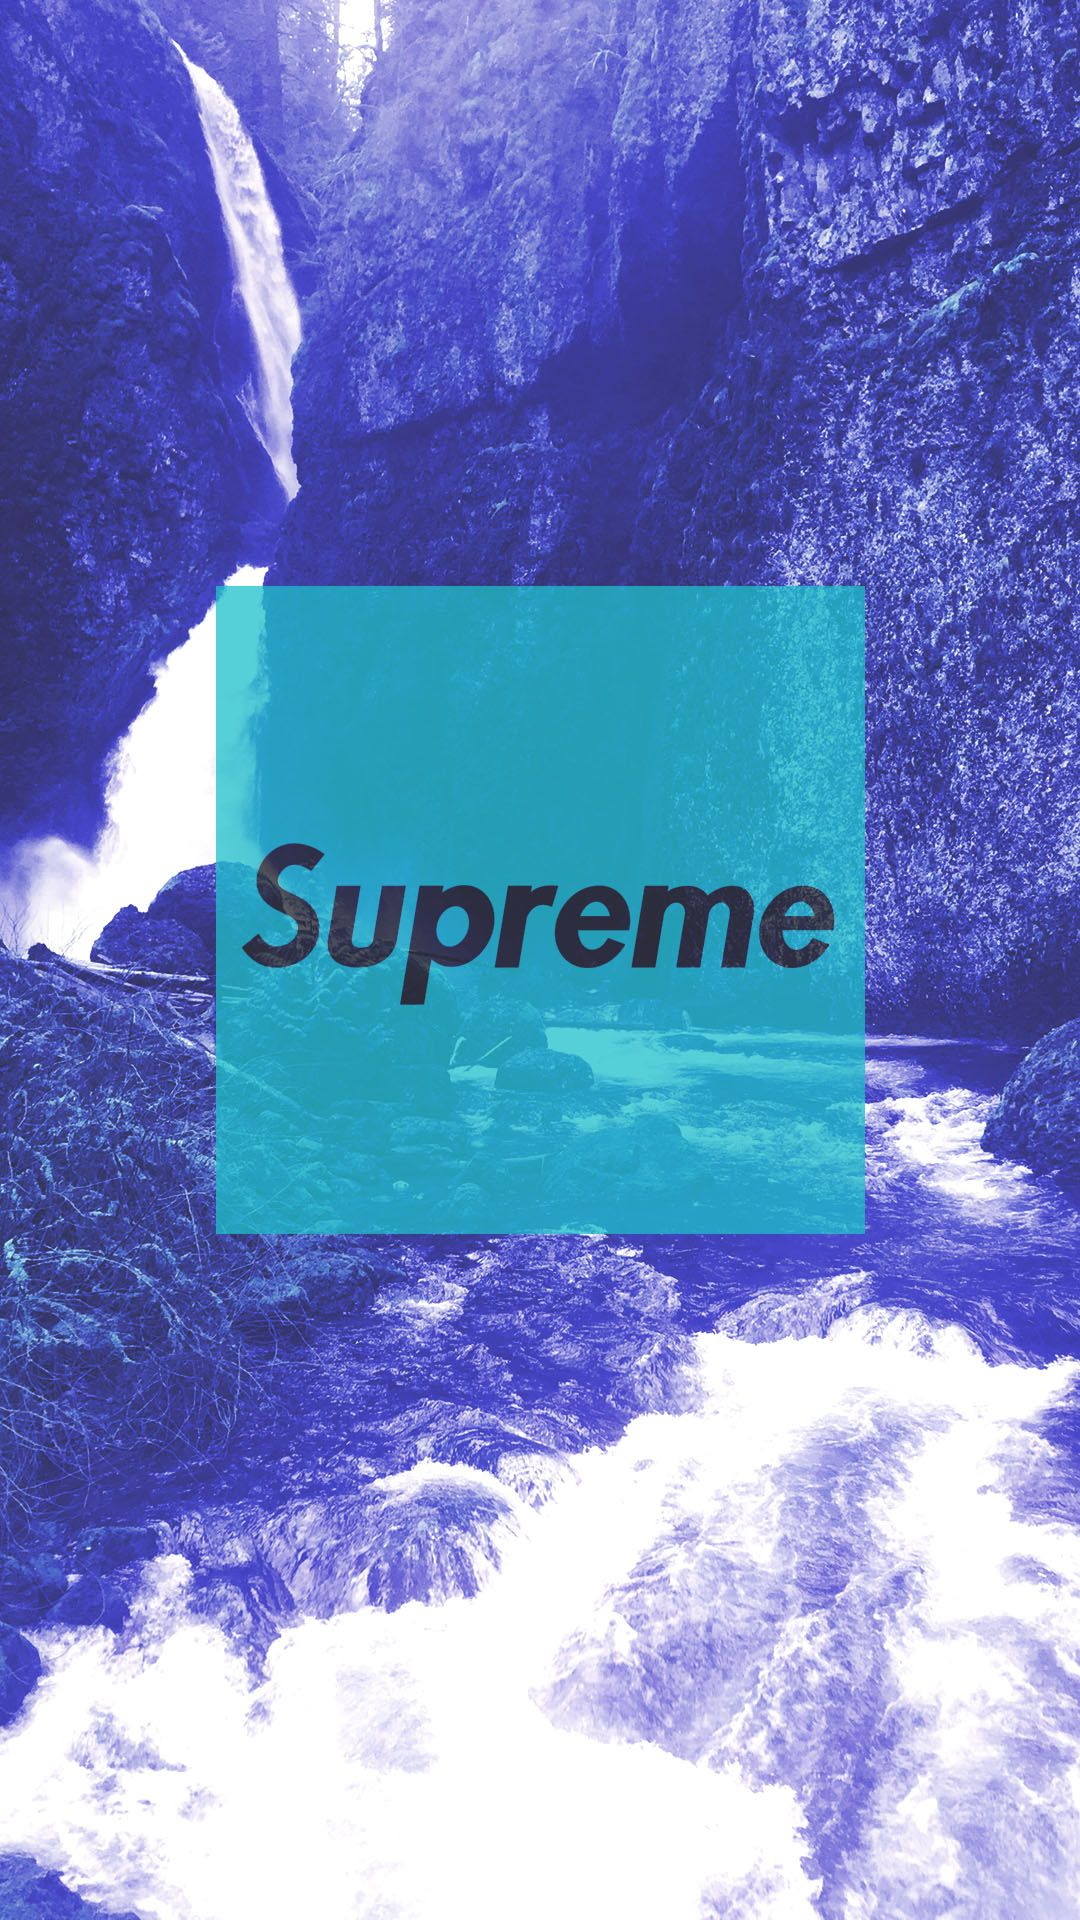 [1080x1920] Supreme (unaltered version in comments) Need